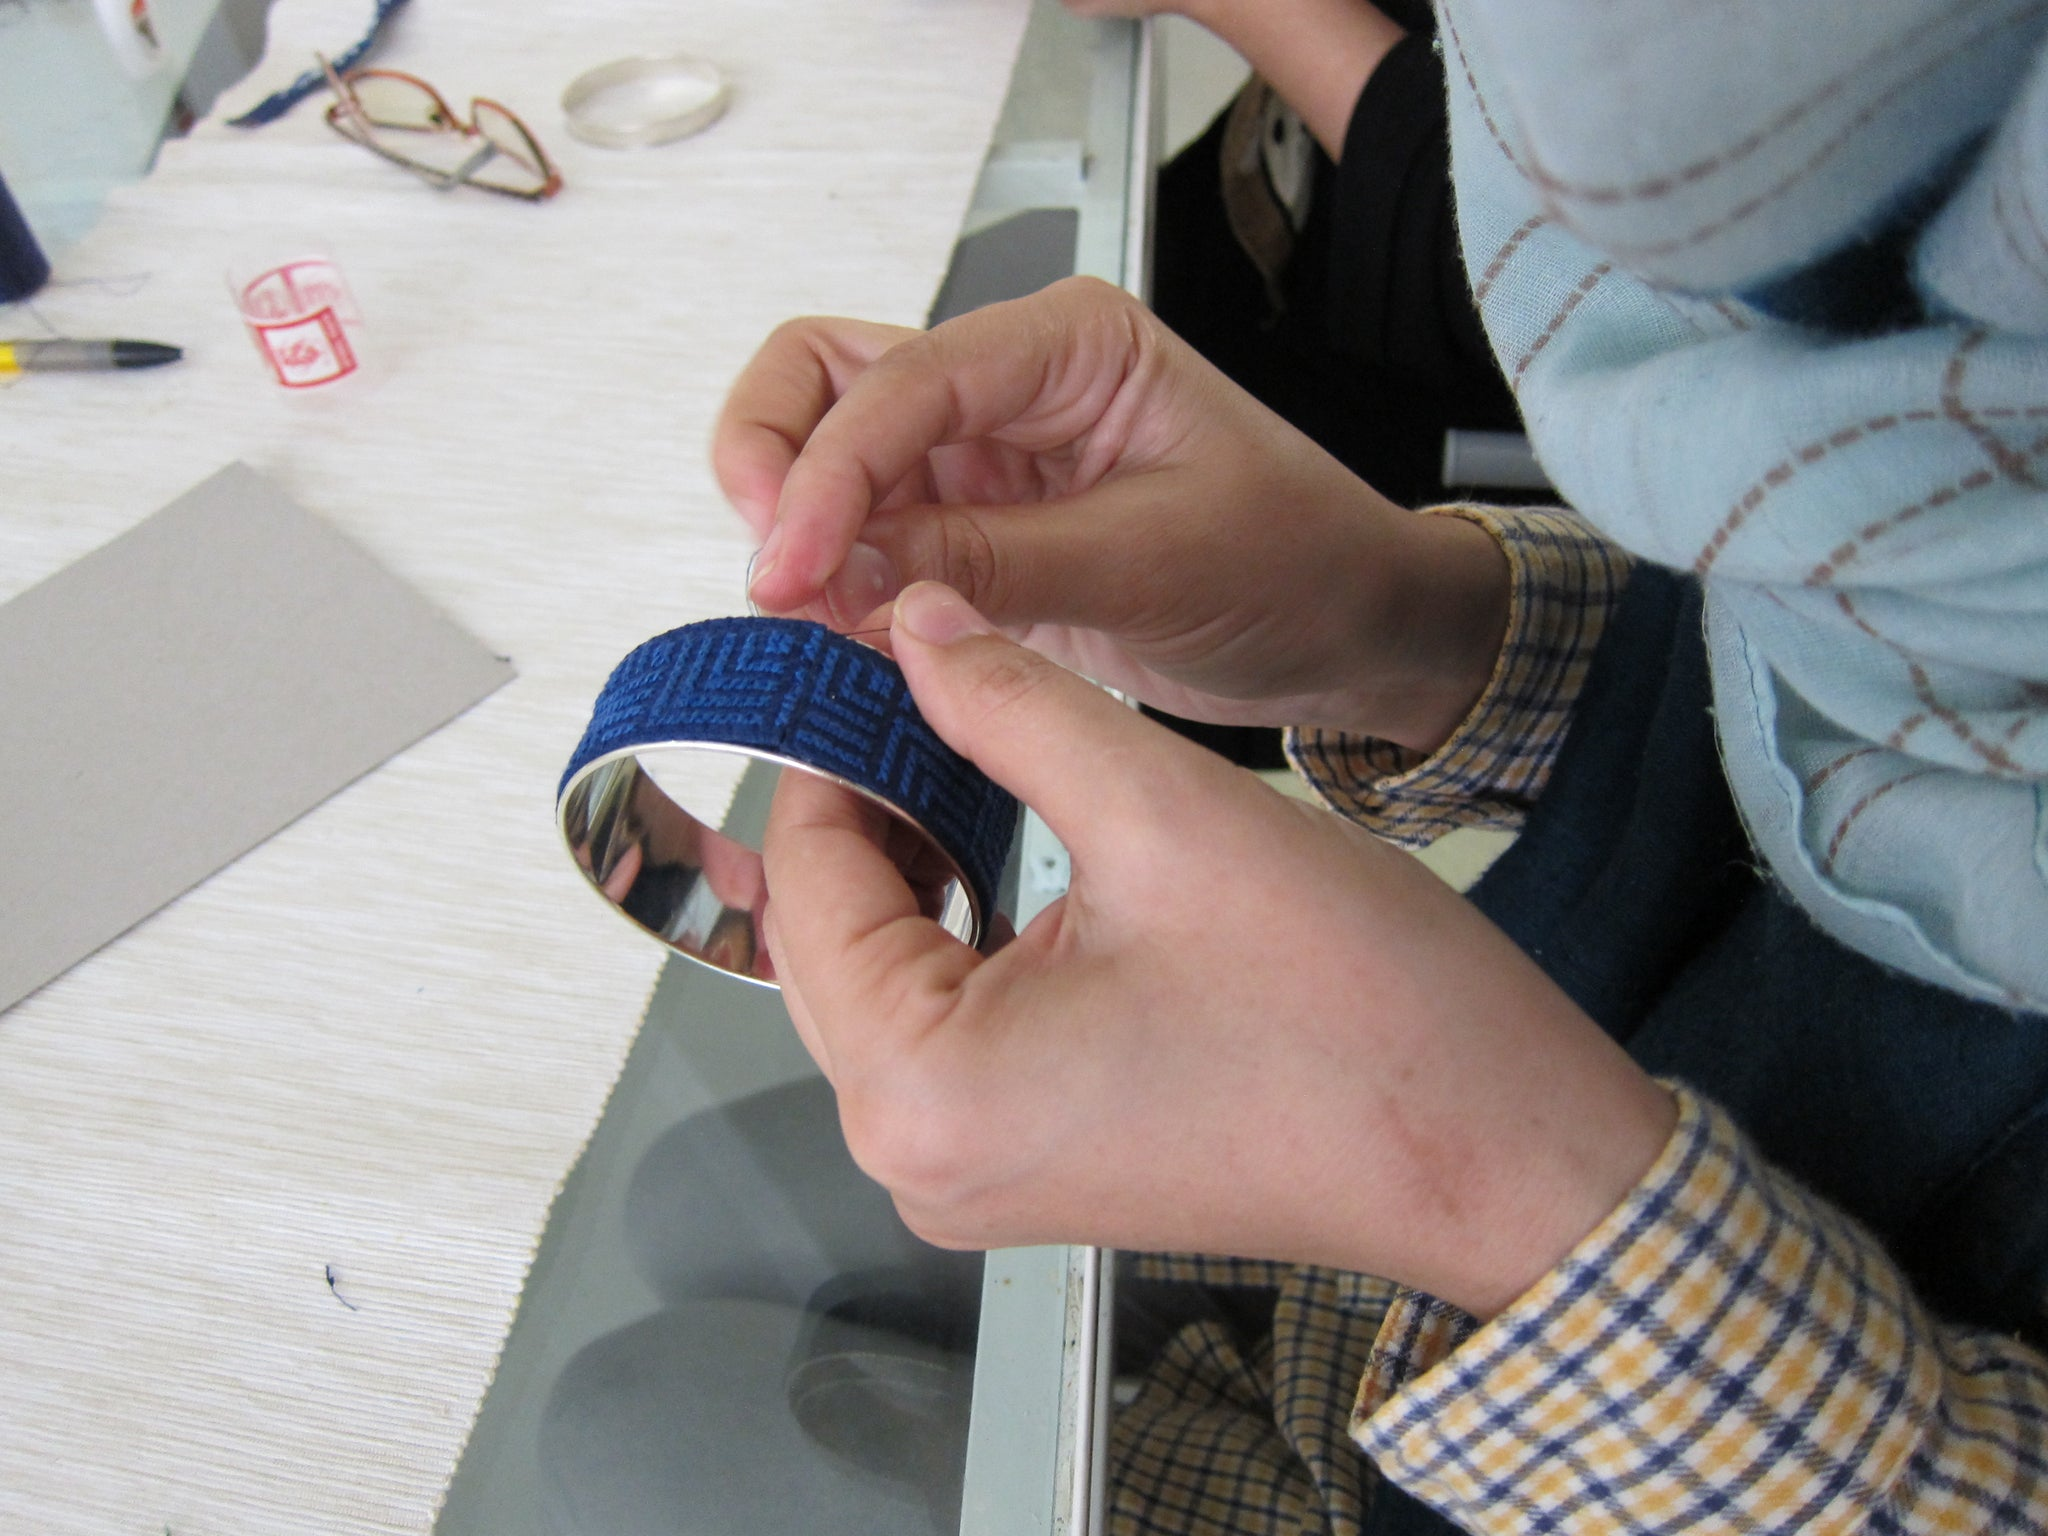 Working with Refugee Artisans